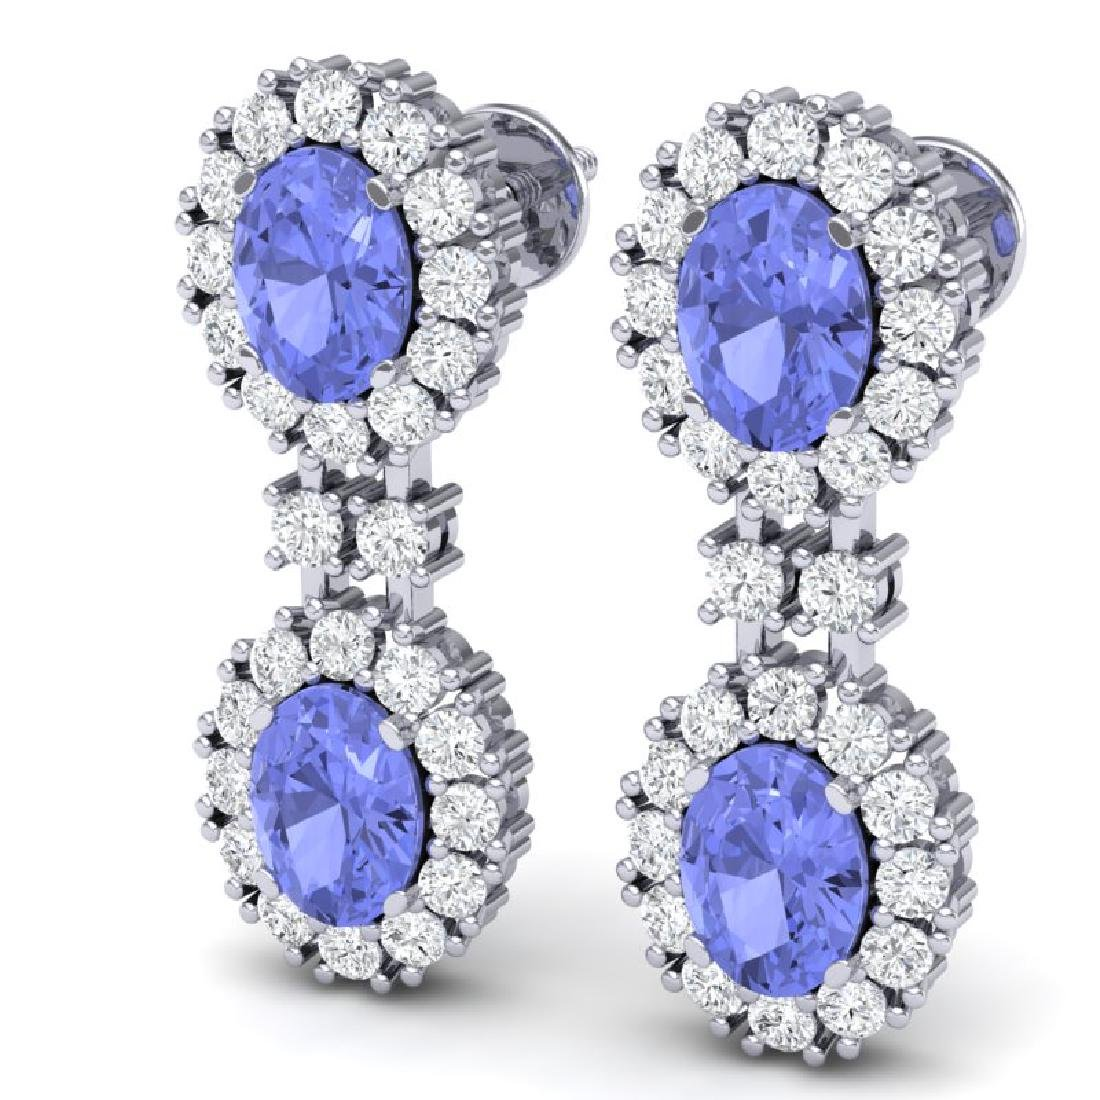 8.35 CTW Royalty Tanzanite & VS Diamond Earrings 18K - 2